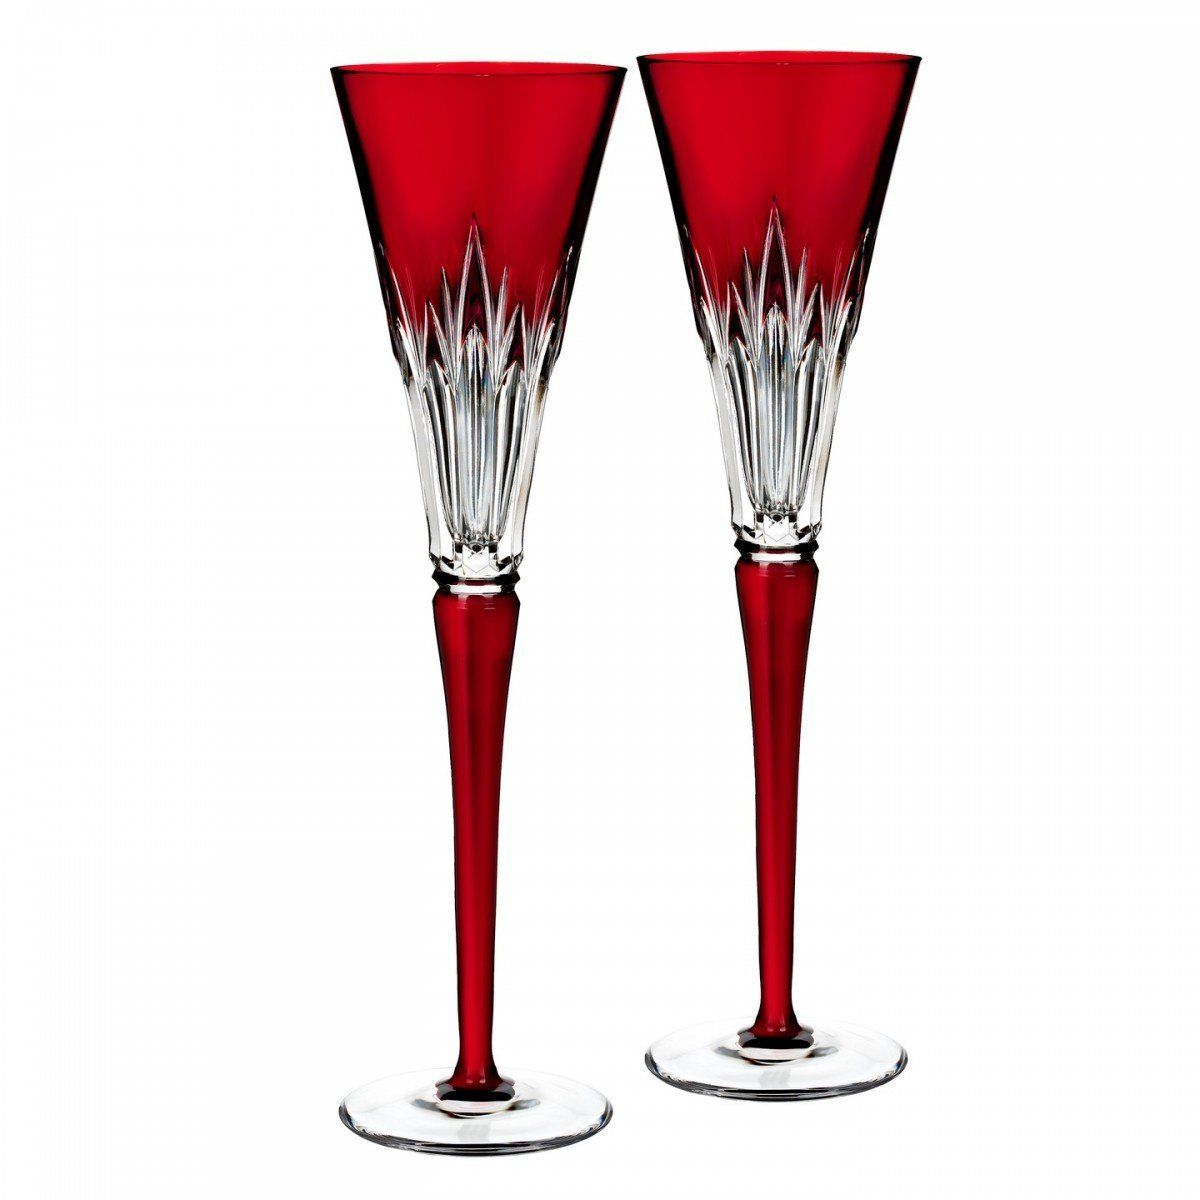 Waterford Times Square Wonder Ruby Flute Pair For More Information Visit Now Glassware Drinkware Waterford Waterford Crystal Crystal Flutes